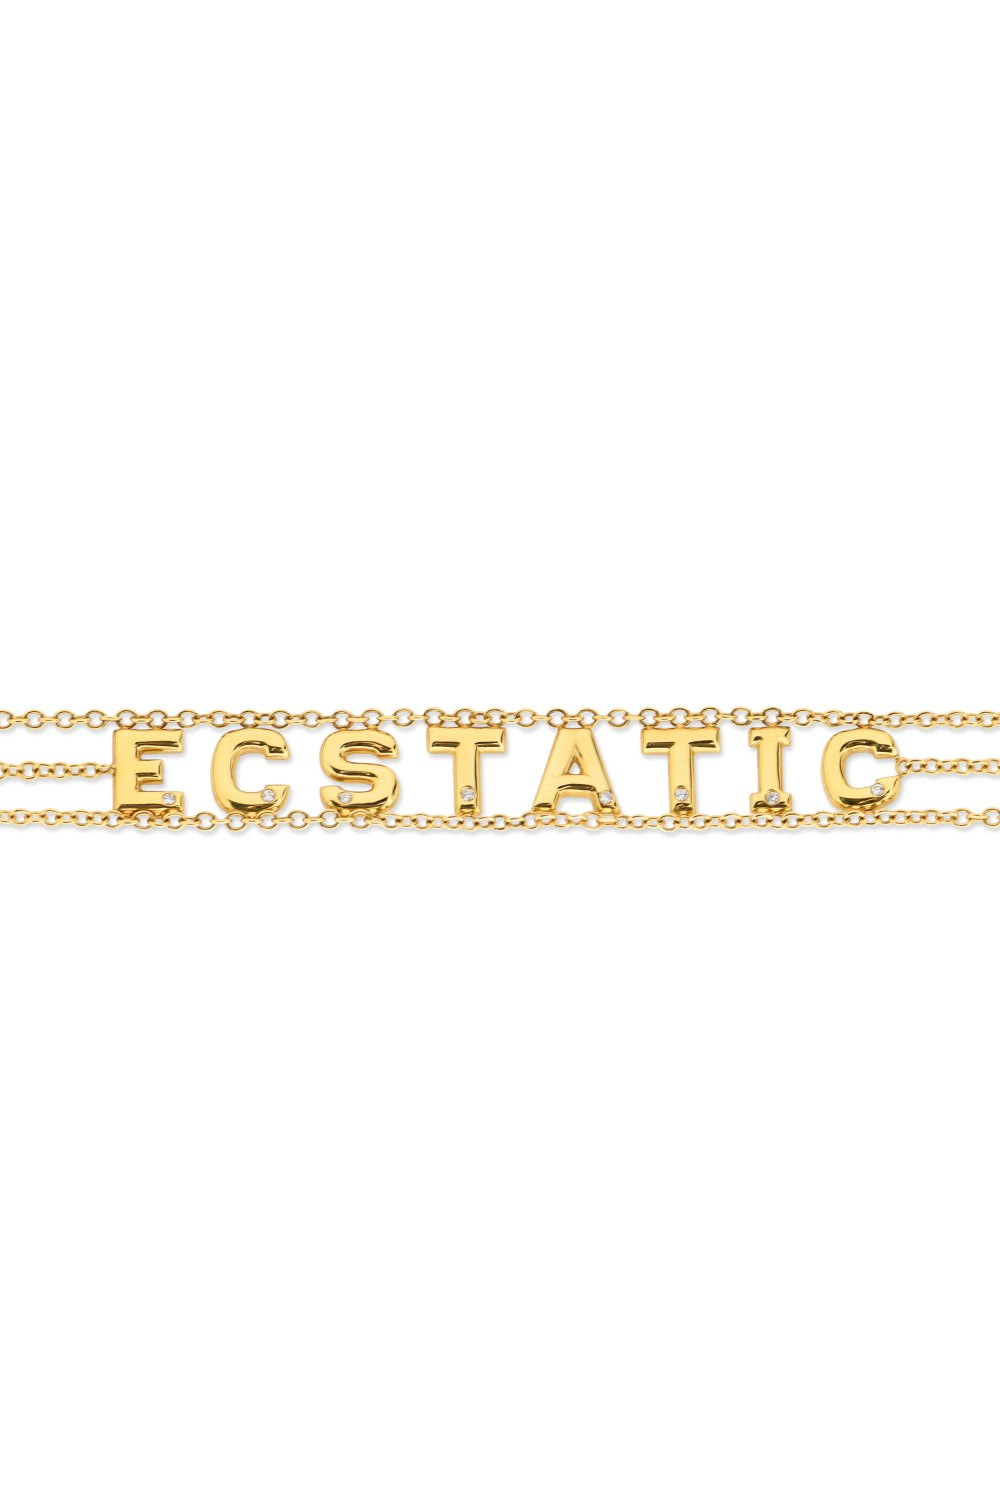 Kessaris-Ecstatic Diamond Bracelet